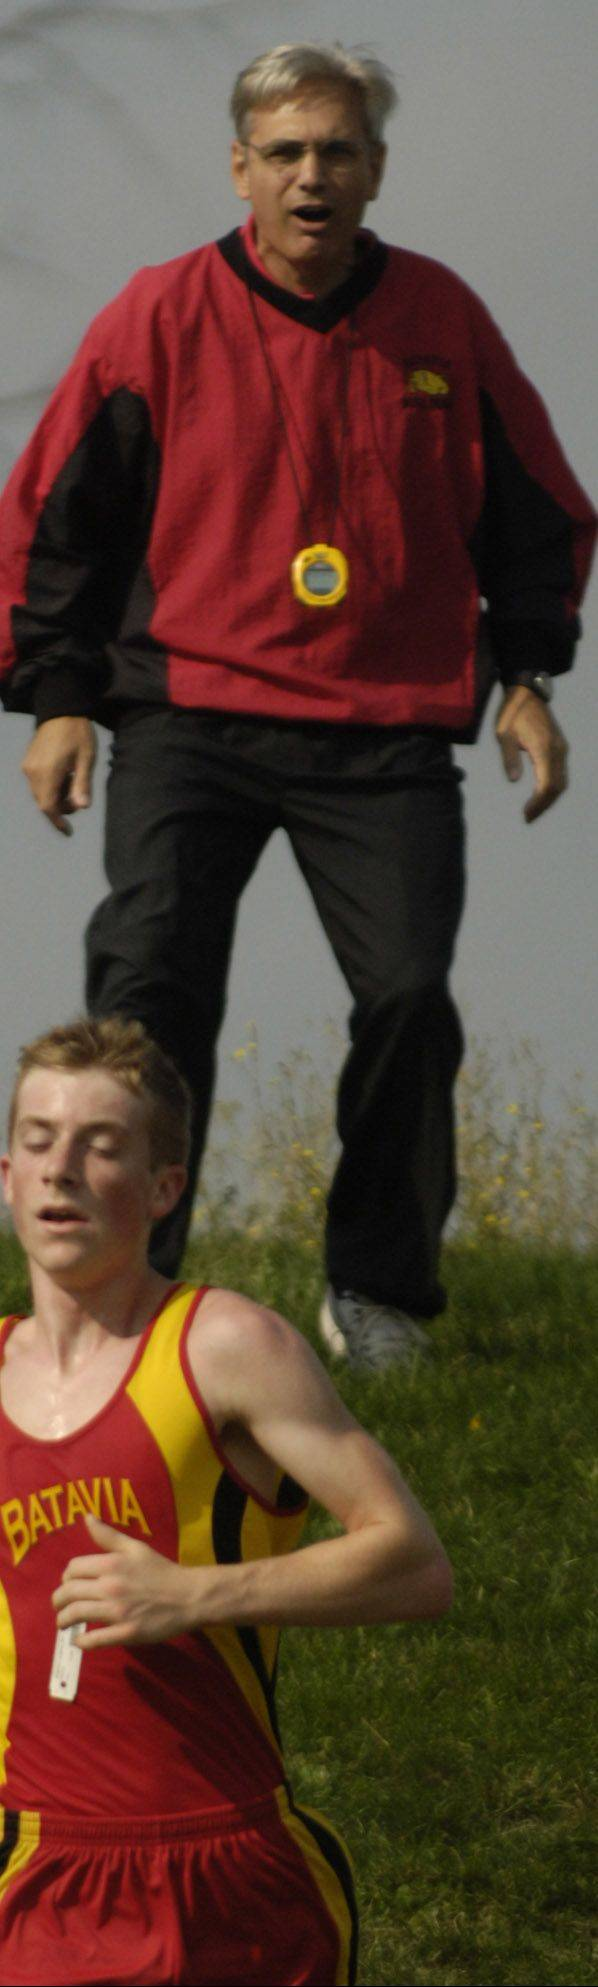 Batavia cross country coach Mike DiDomenico, pictured at a past Royal-Cadet Invitational, saw his team qualify for state for the first time Saturday in his final season after 34 years coaching the Bulldogs.